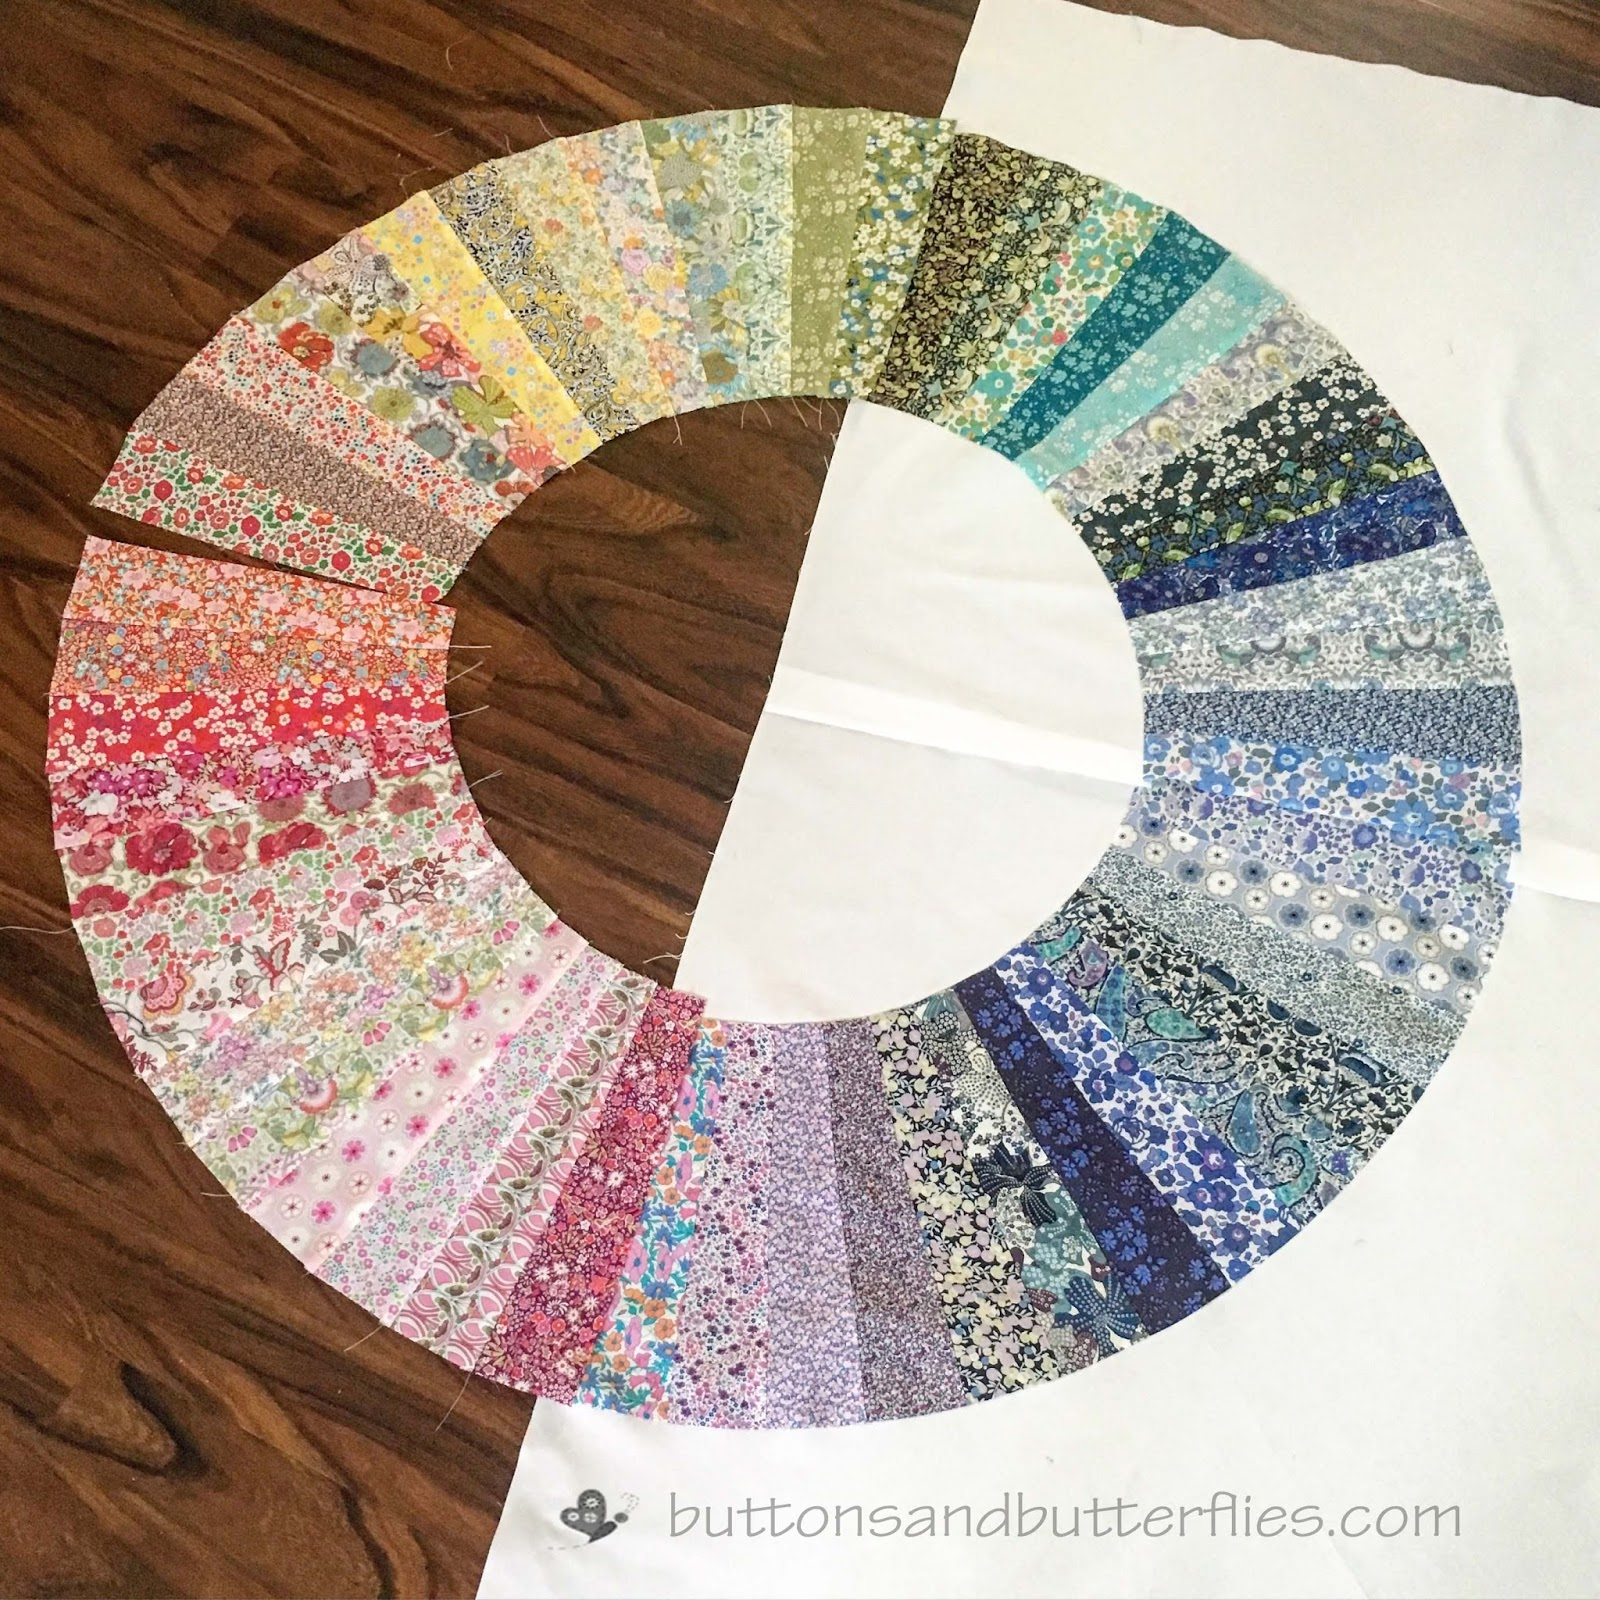 Buttons And Butterflies Liberty Color Wheel